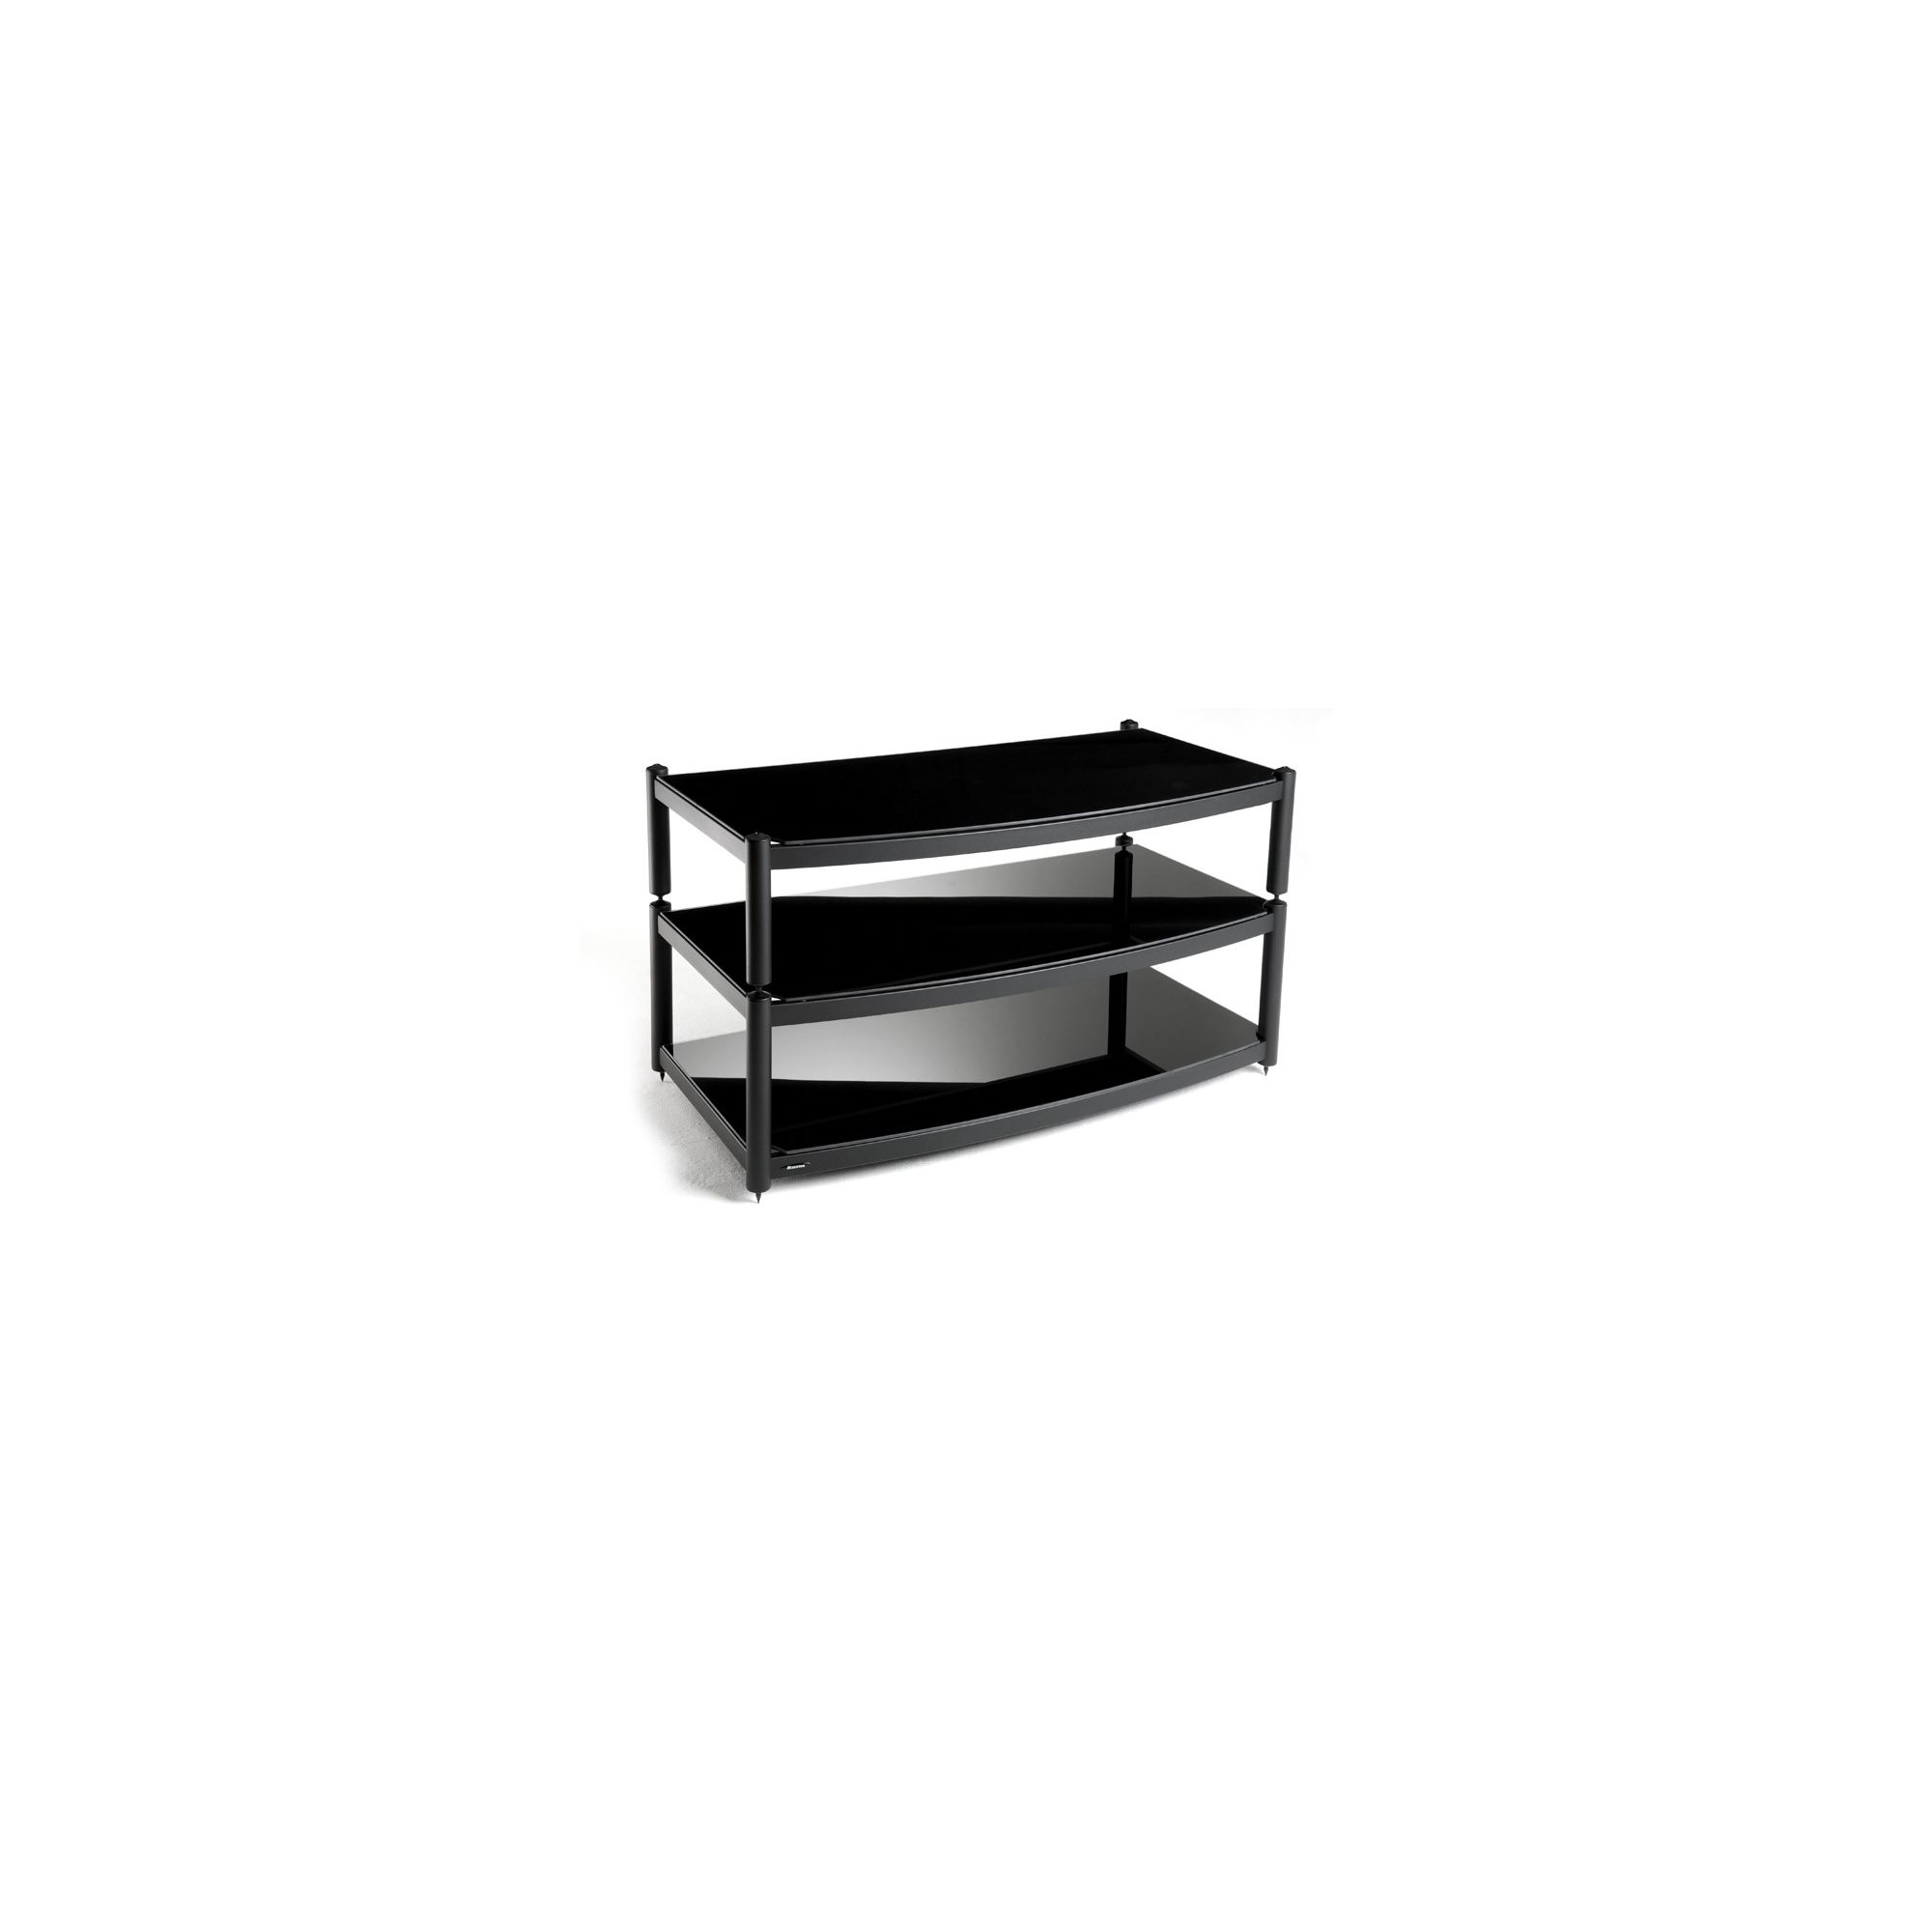 Atacama Audio Equinox Glass TV Stand for LCD / Plasmas - Silver/ Piano Black at Tesco Direct